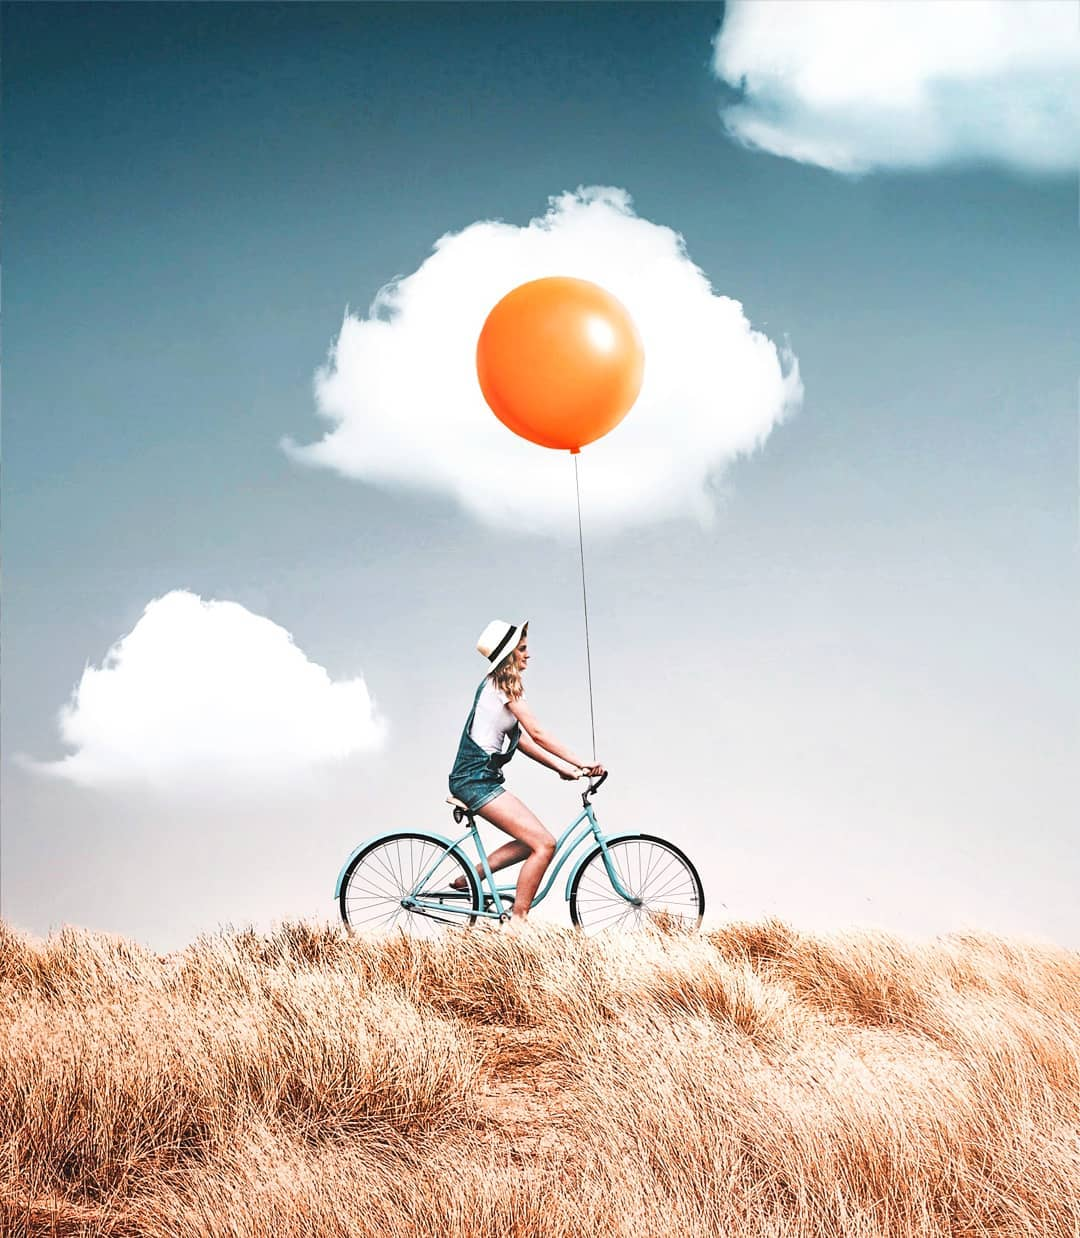 photo manipulation fried egg balloon